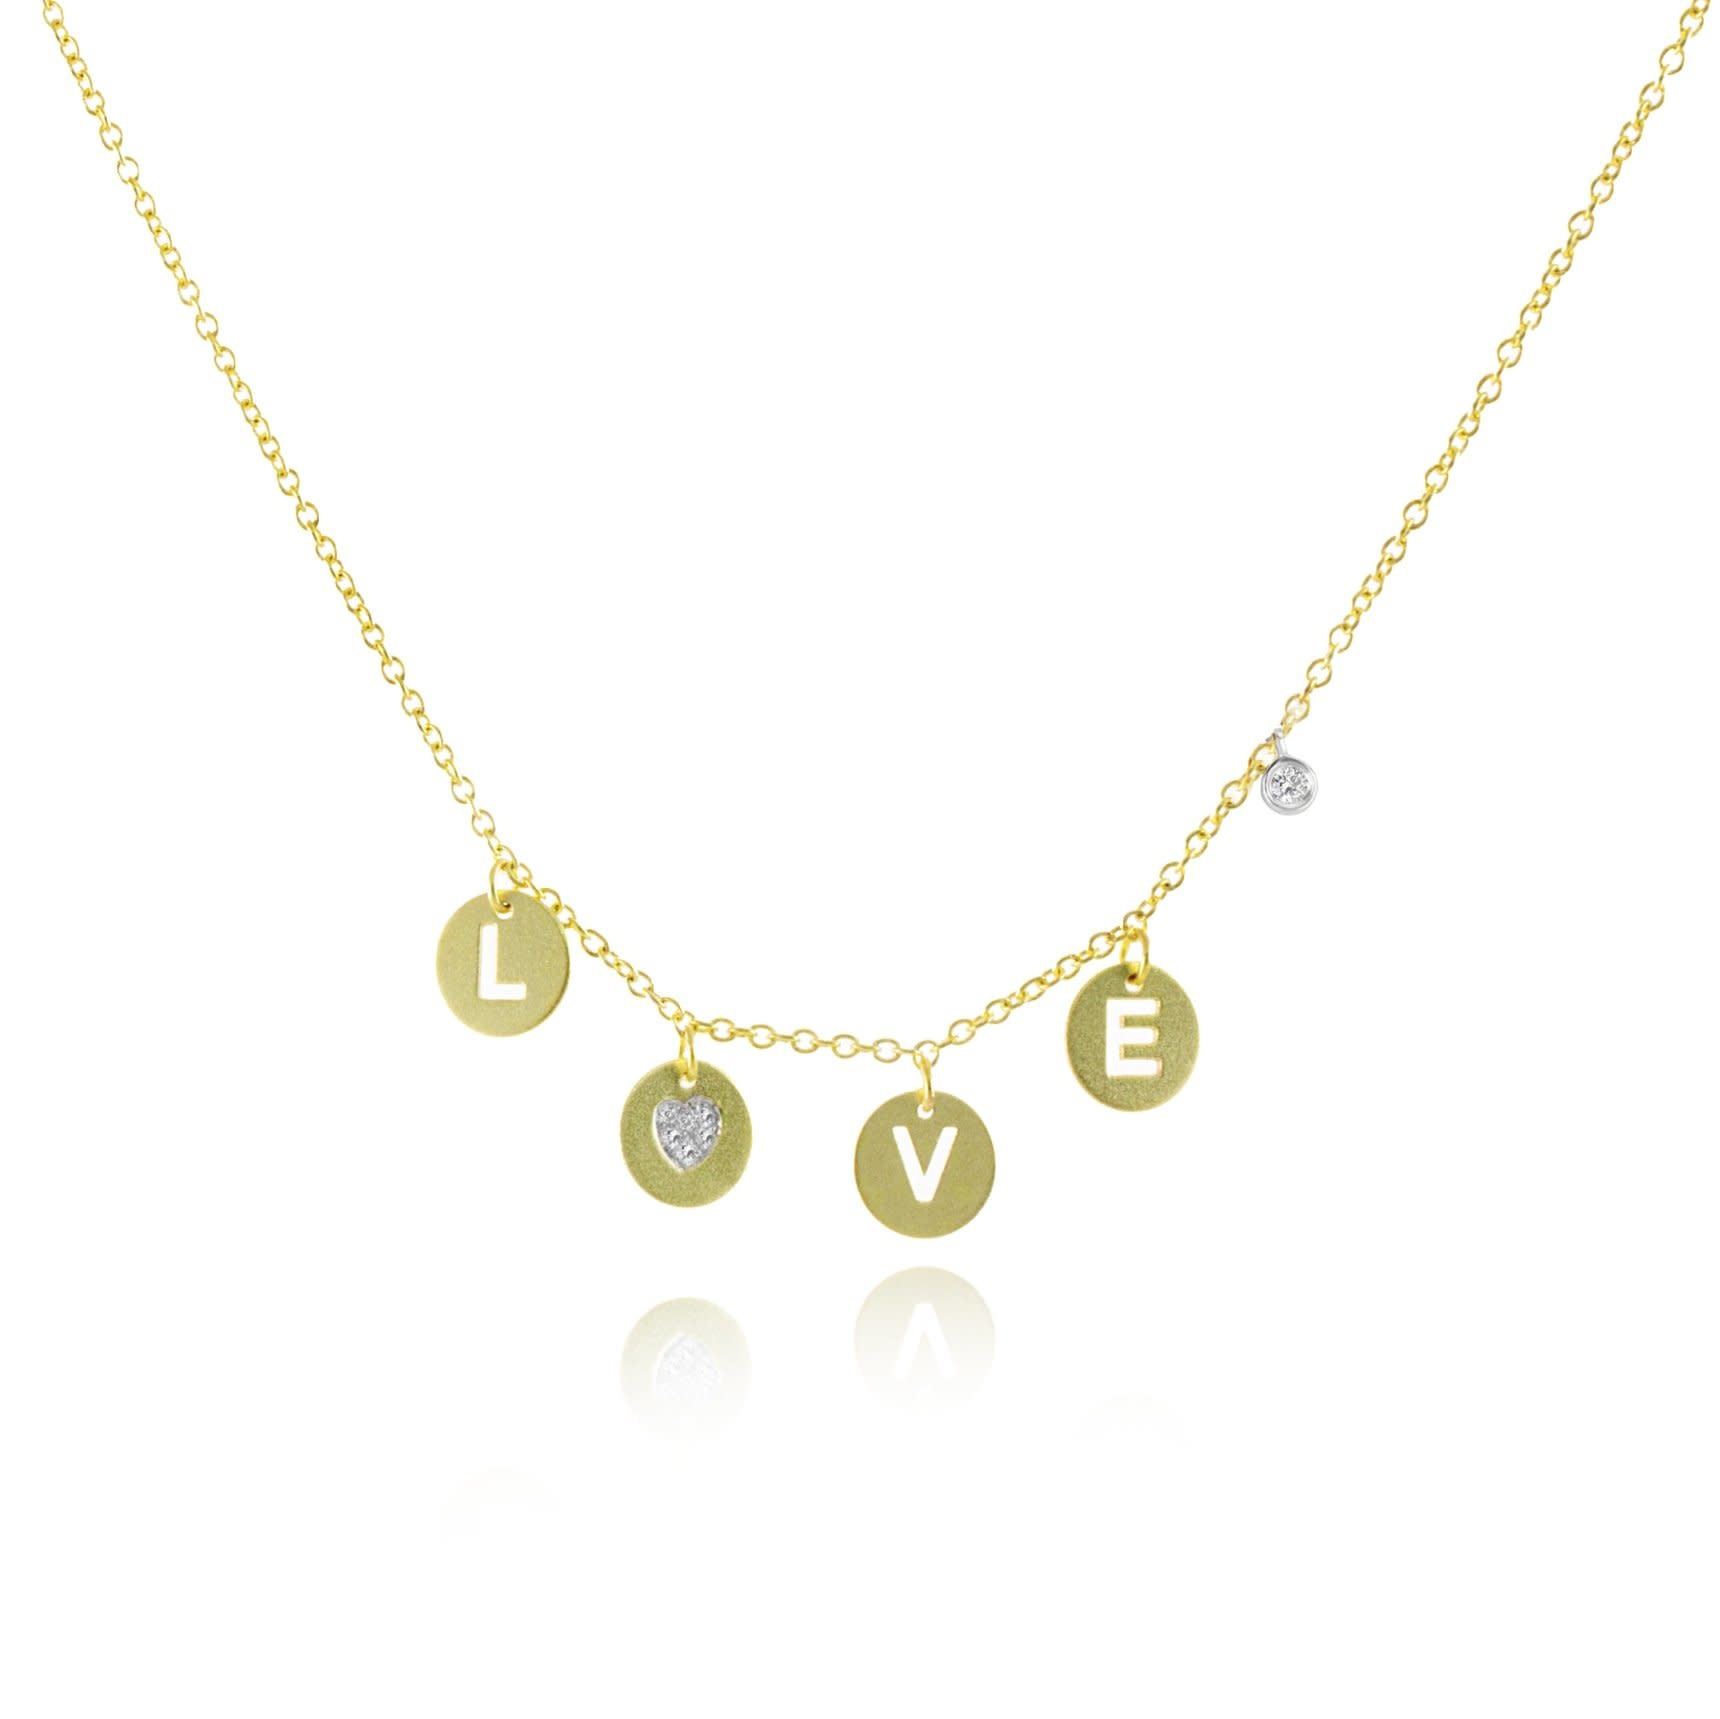 Meira T 14kt Yellow Gold Love Disc Necklace